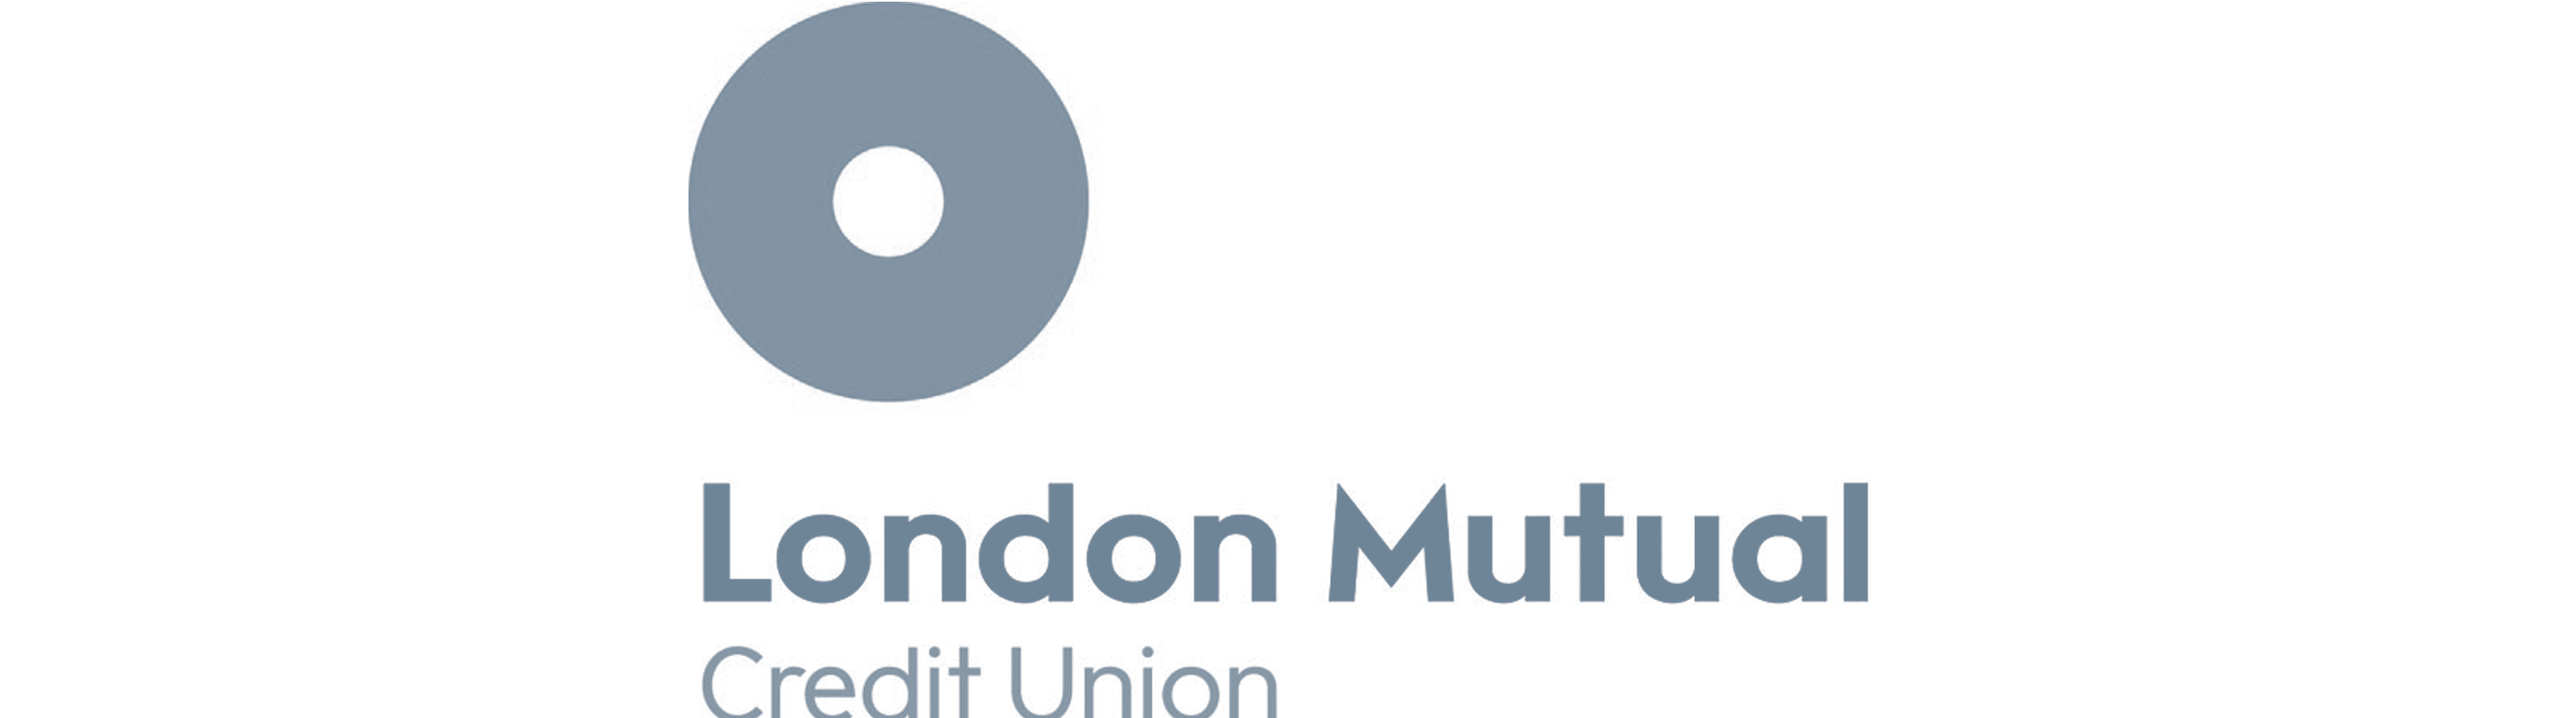 London Mutual Credit Union